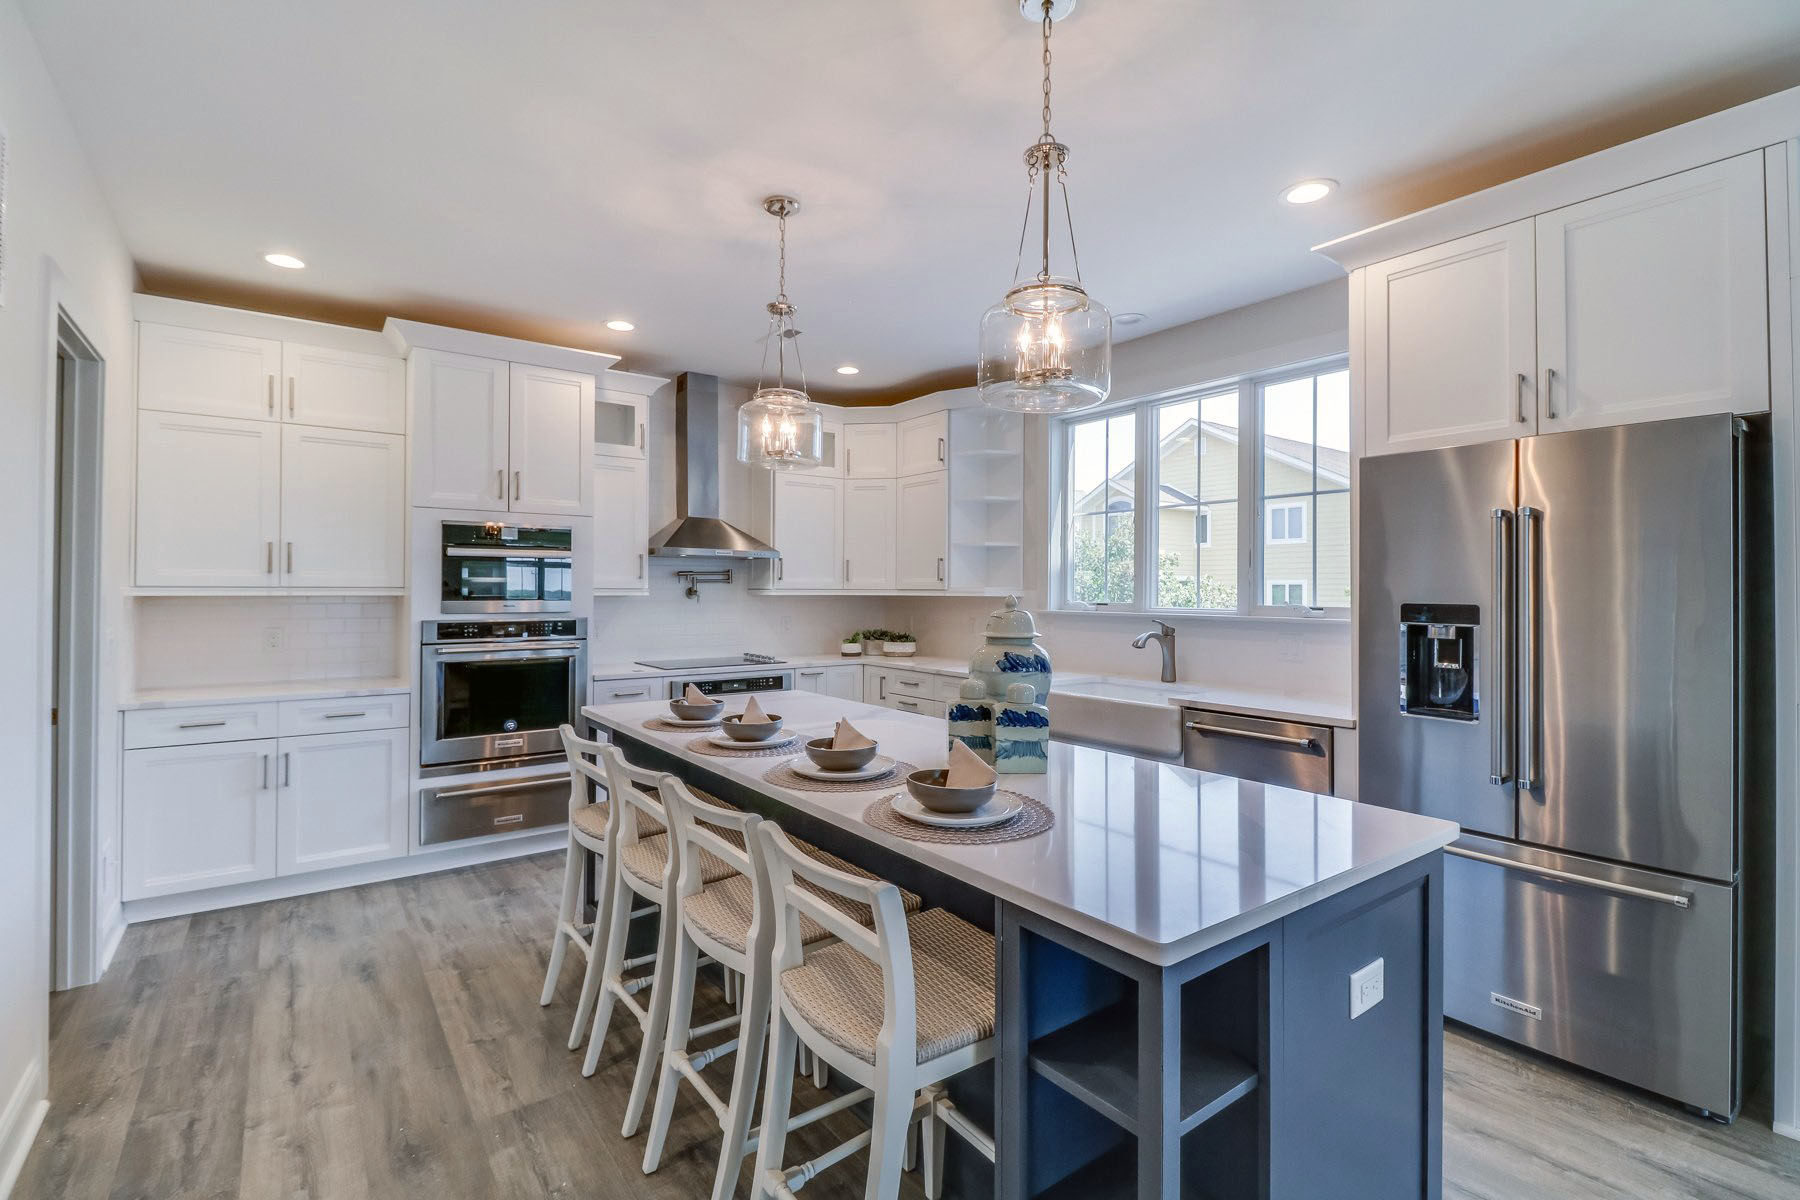 Gray blue island with white shaker style cabinetry. Muted gray faux wood floors.